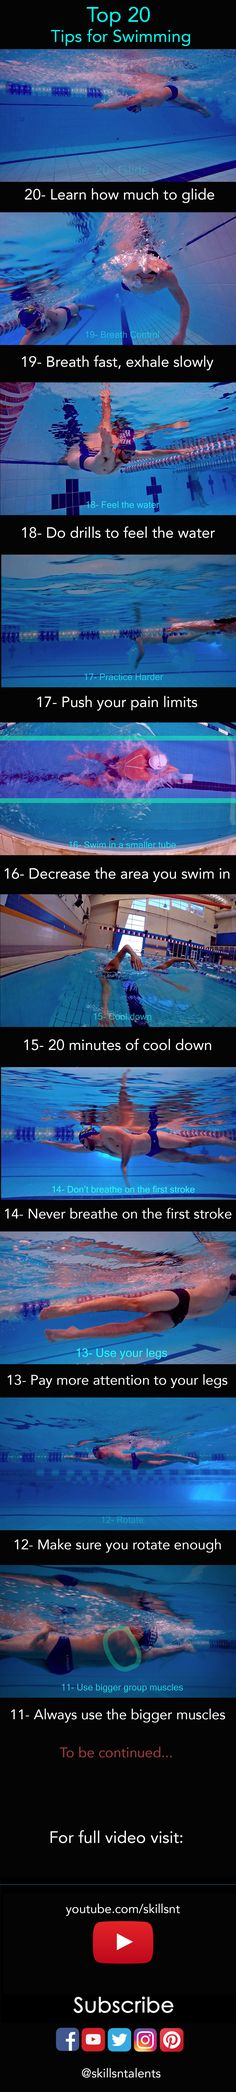 Top 20 tips to swim faster. Part 1. Visit the link for full video!